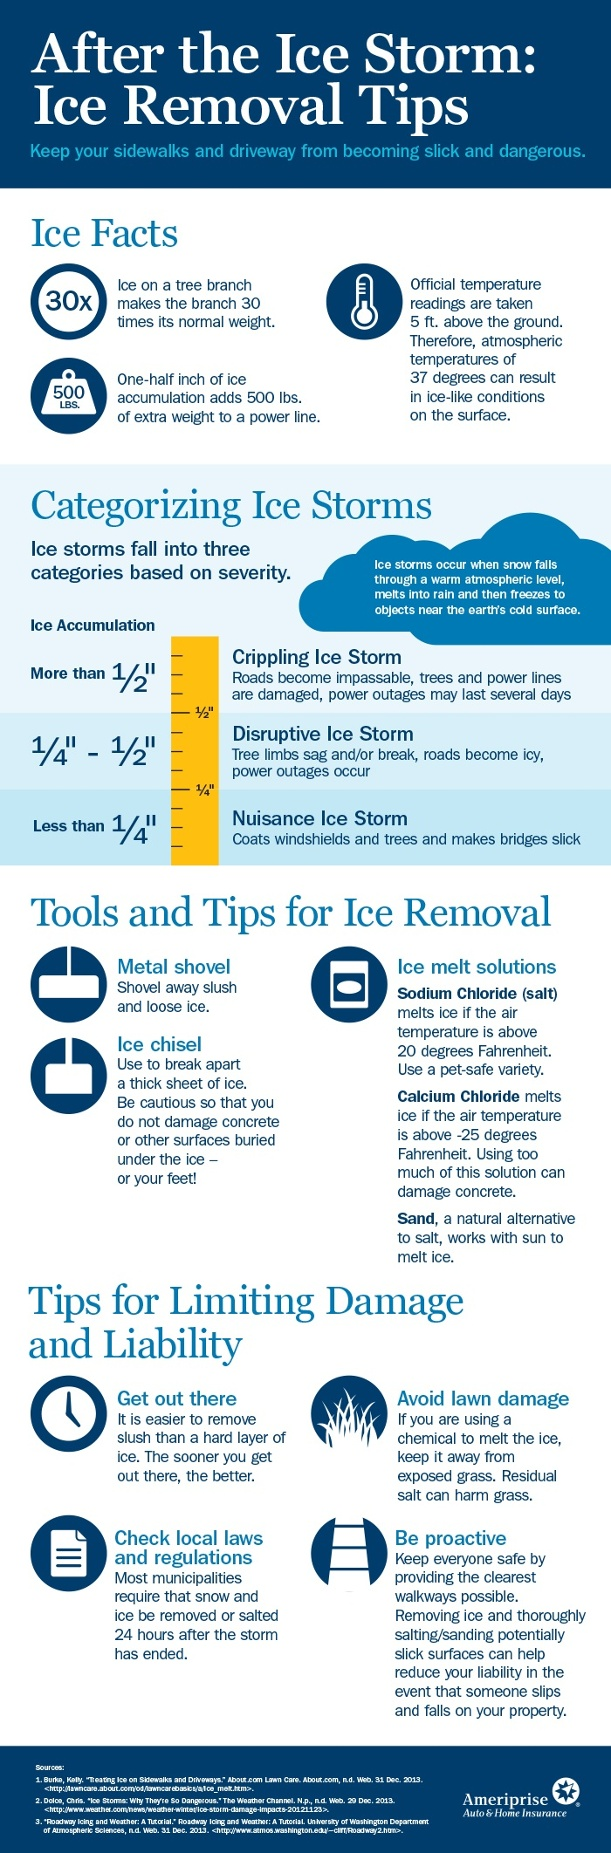 Connecticut weather has a tendency to be unpredictable at times and a snow storm can quickly occur before you're ready....